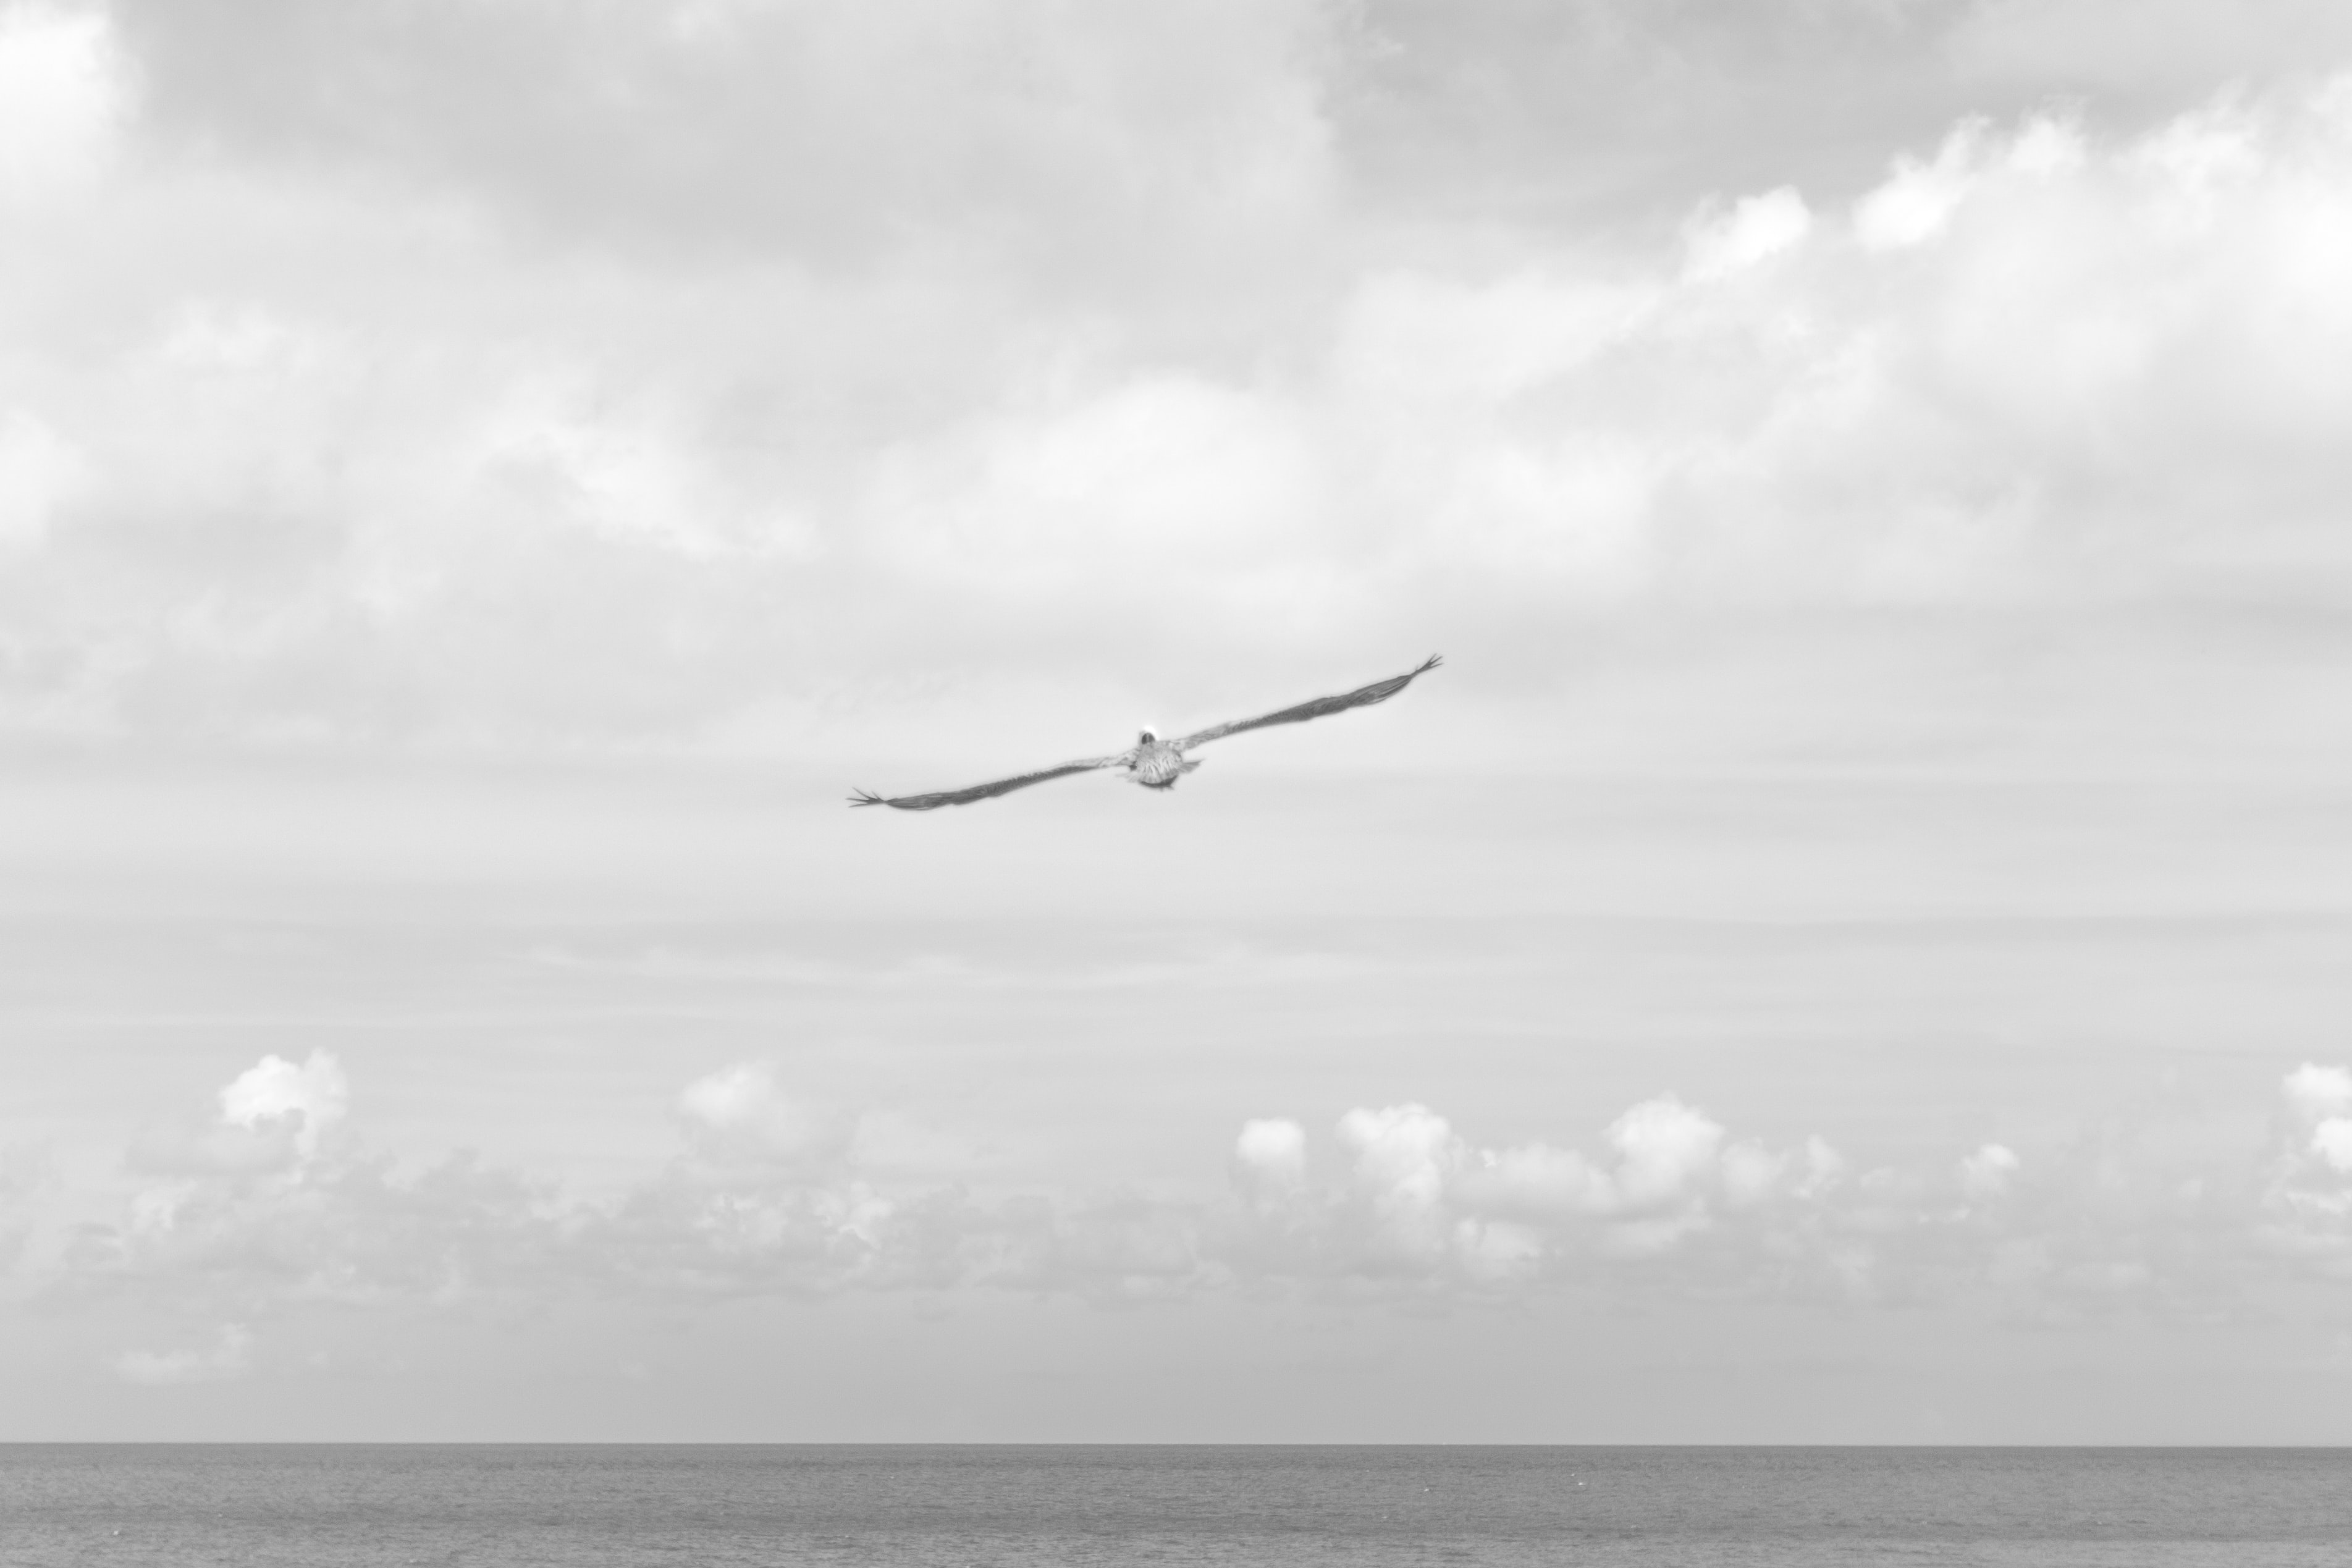 Black and white shot of seagull with full wingspan flying over sea with cloudy sky